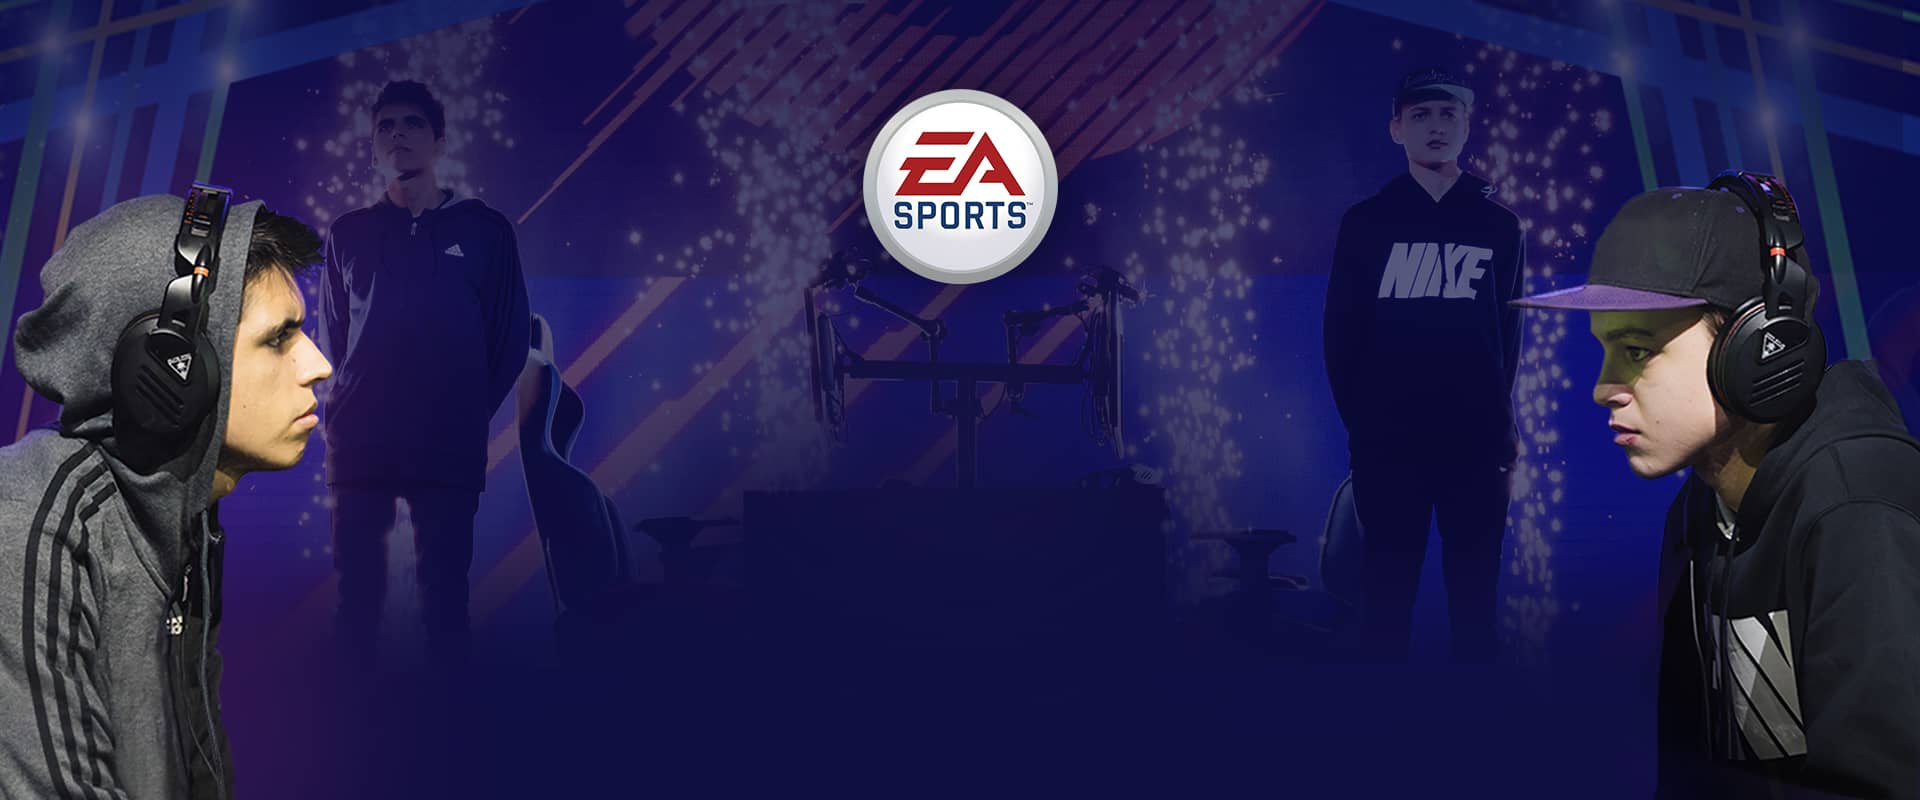 Turtle Beach is de trotse audiopartner van de internationale FIFA 18-reeks van EA Sports